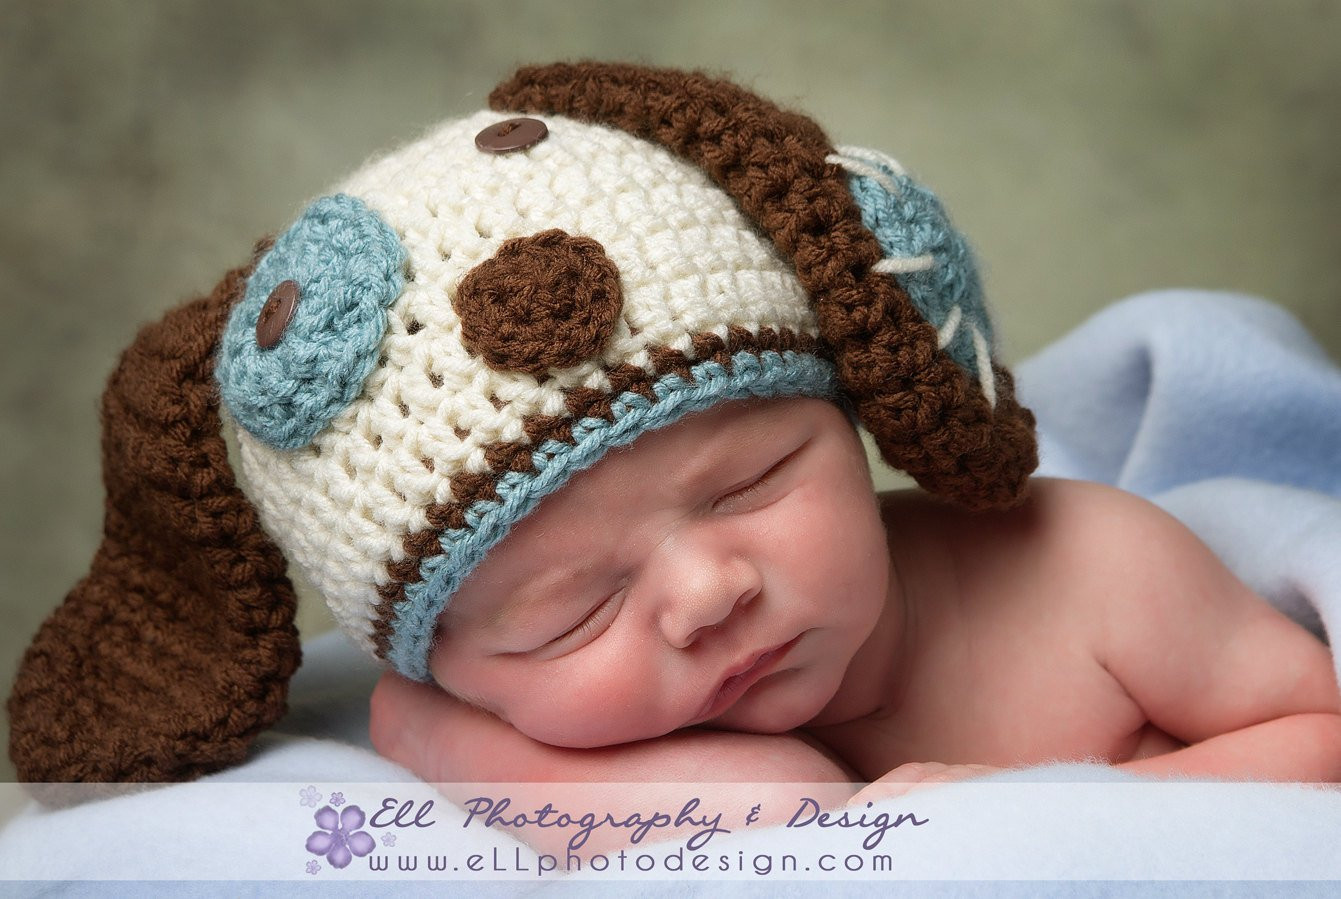 New Crochet Puppy Dog Hat Graphy Prop by Cherlynnephotography Crochet Dog Hat Of Marvelous 45 Pictures Crochet Dog Hat